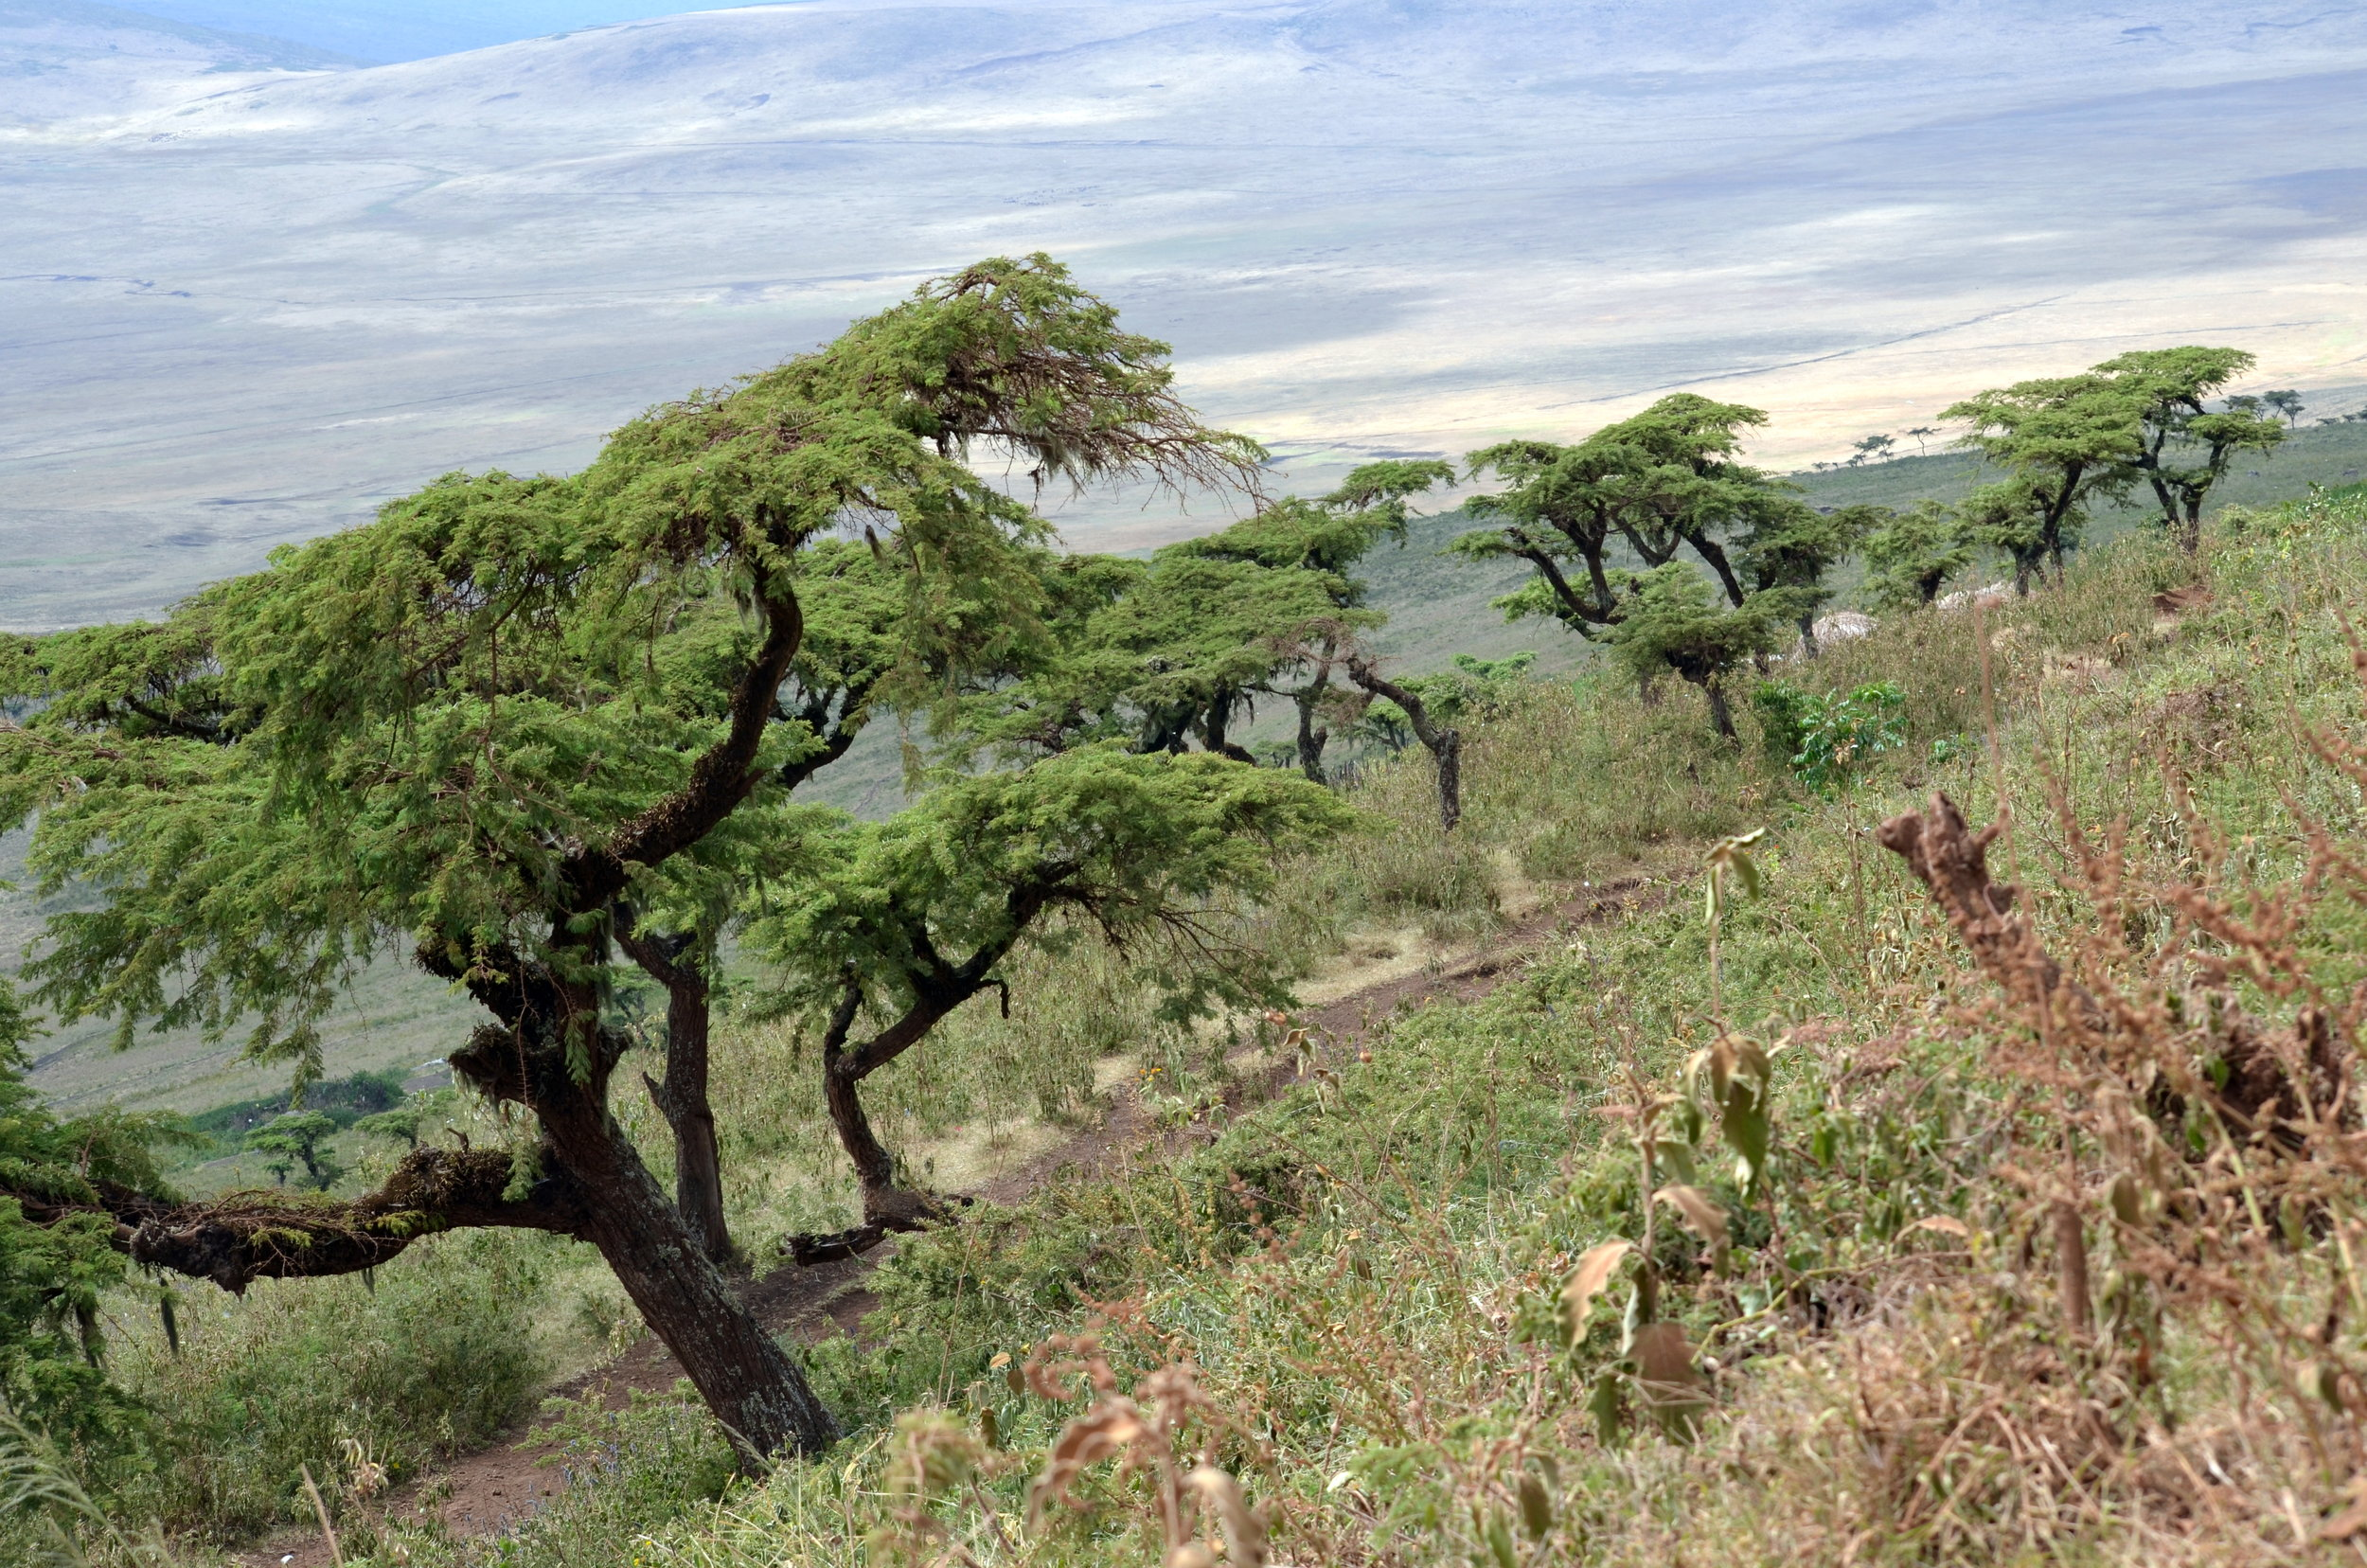 Copy of Iyeala's gravesite on the rim of the Ngorongoro Crater (AF015)